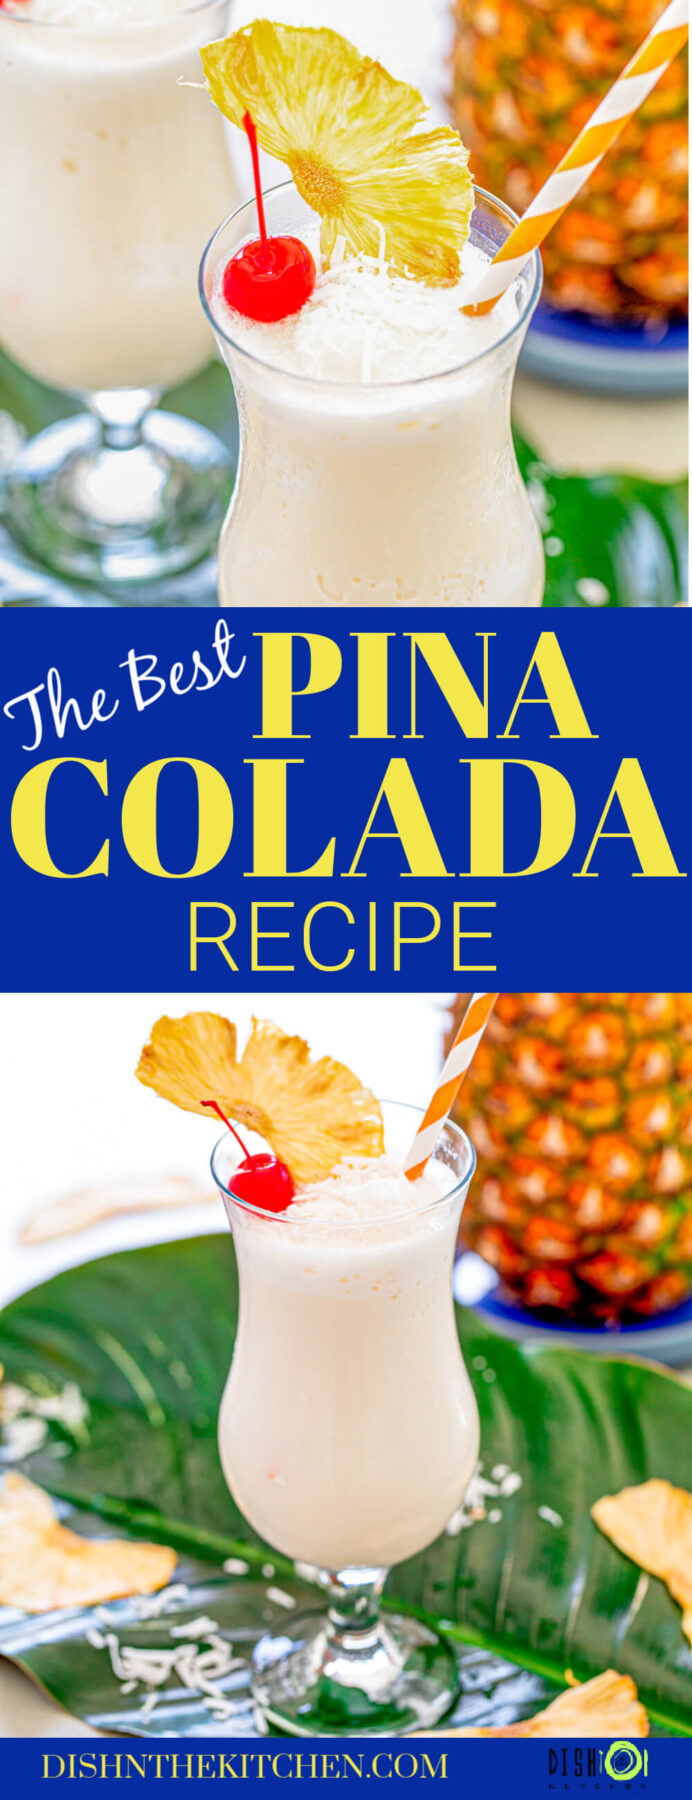 Pinterest image of two pina coladas garnished with a red cherry, dried pineapple wedge, and shredded coconut.